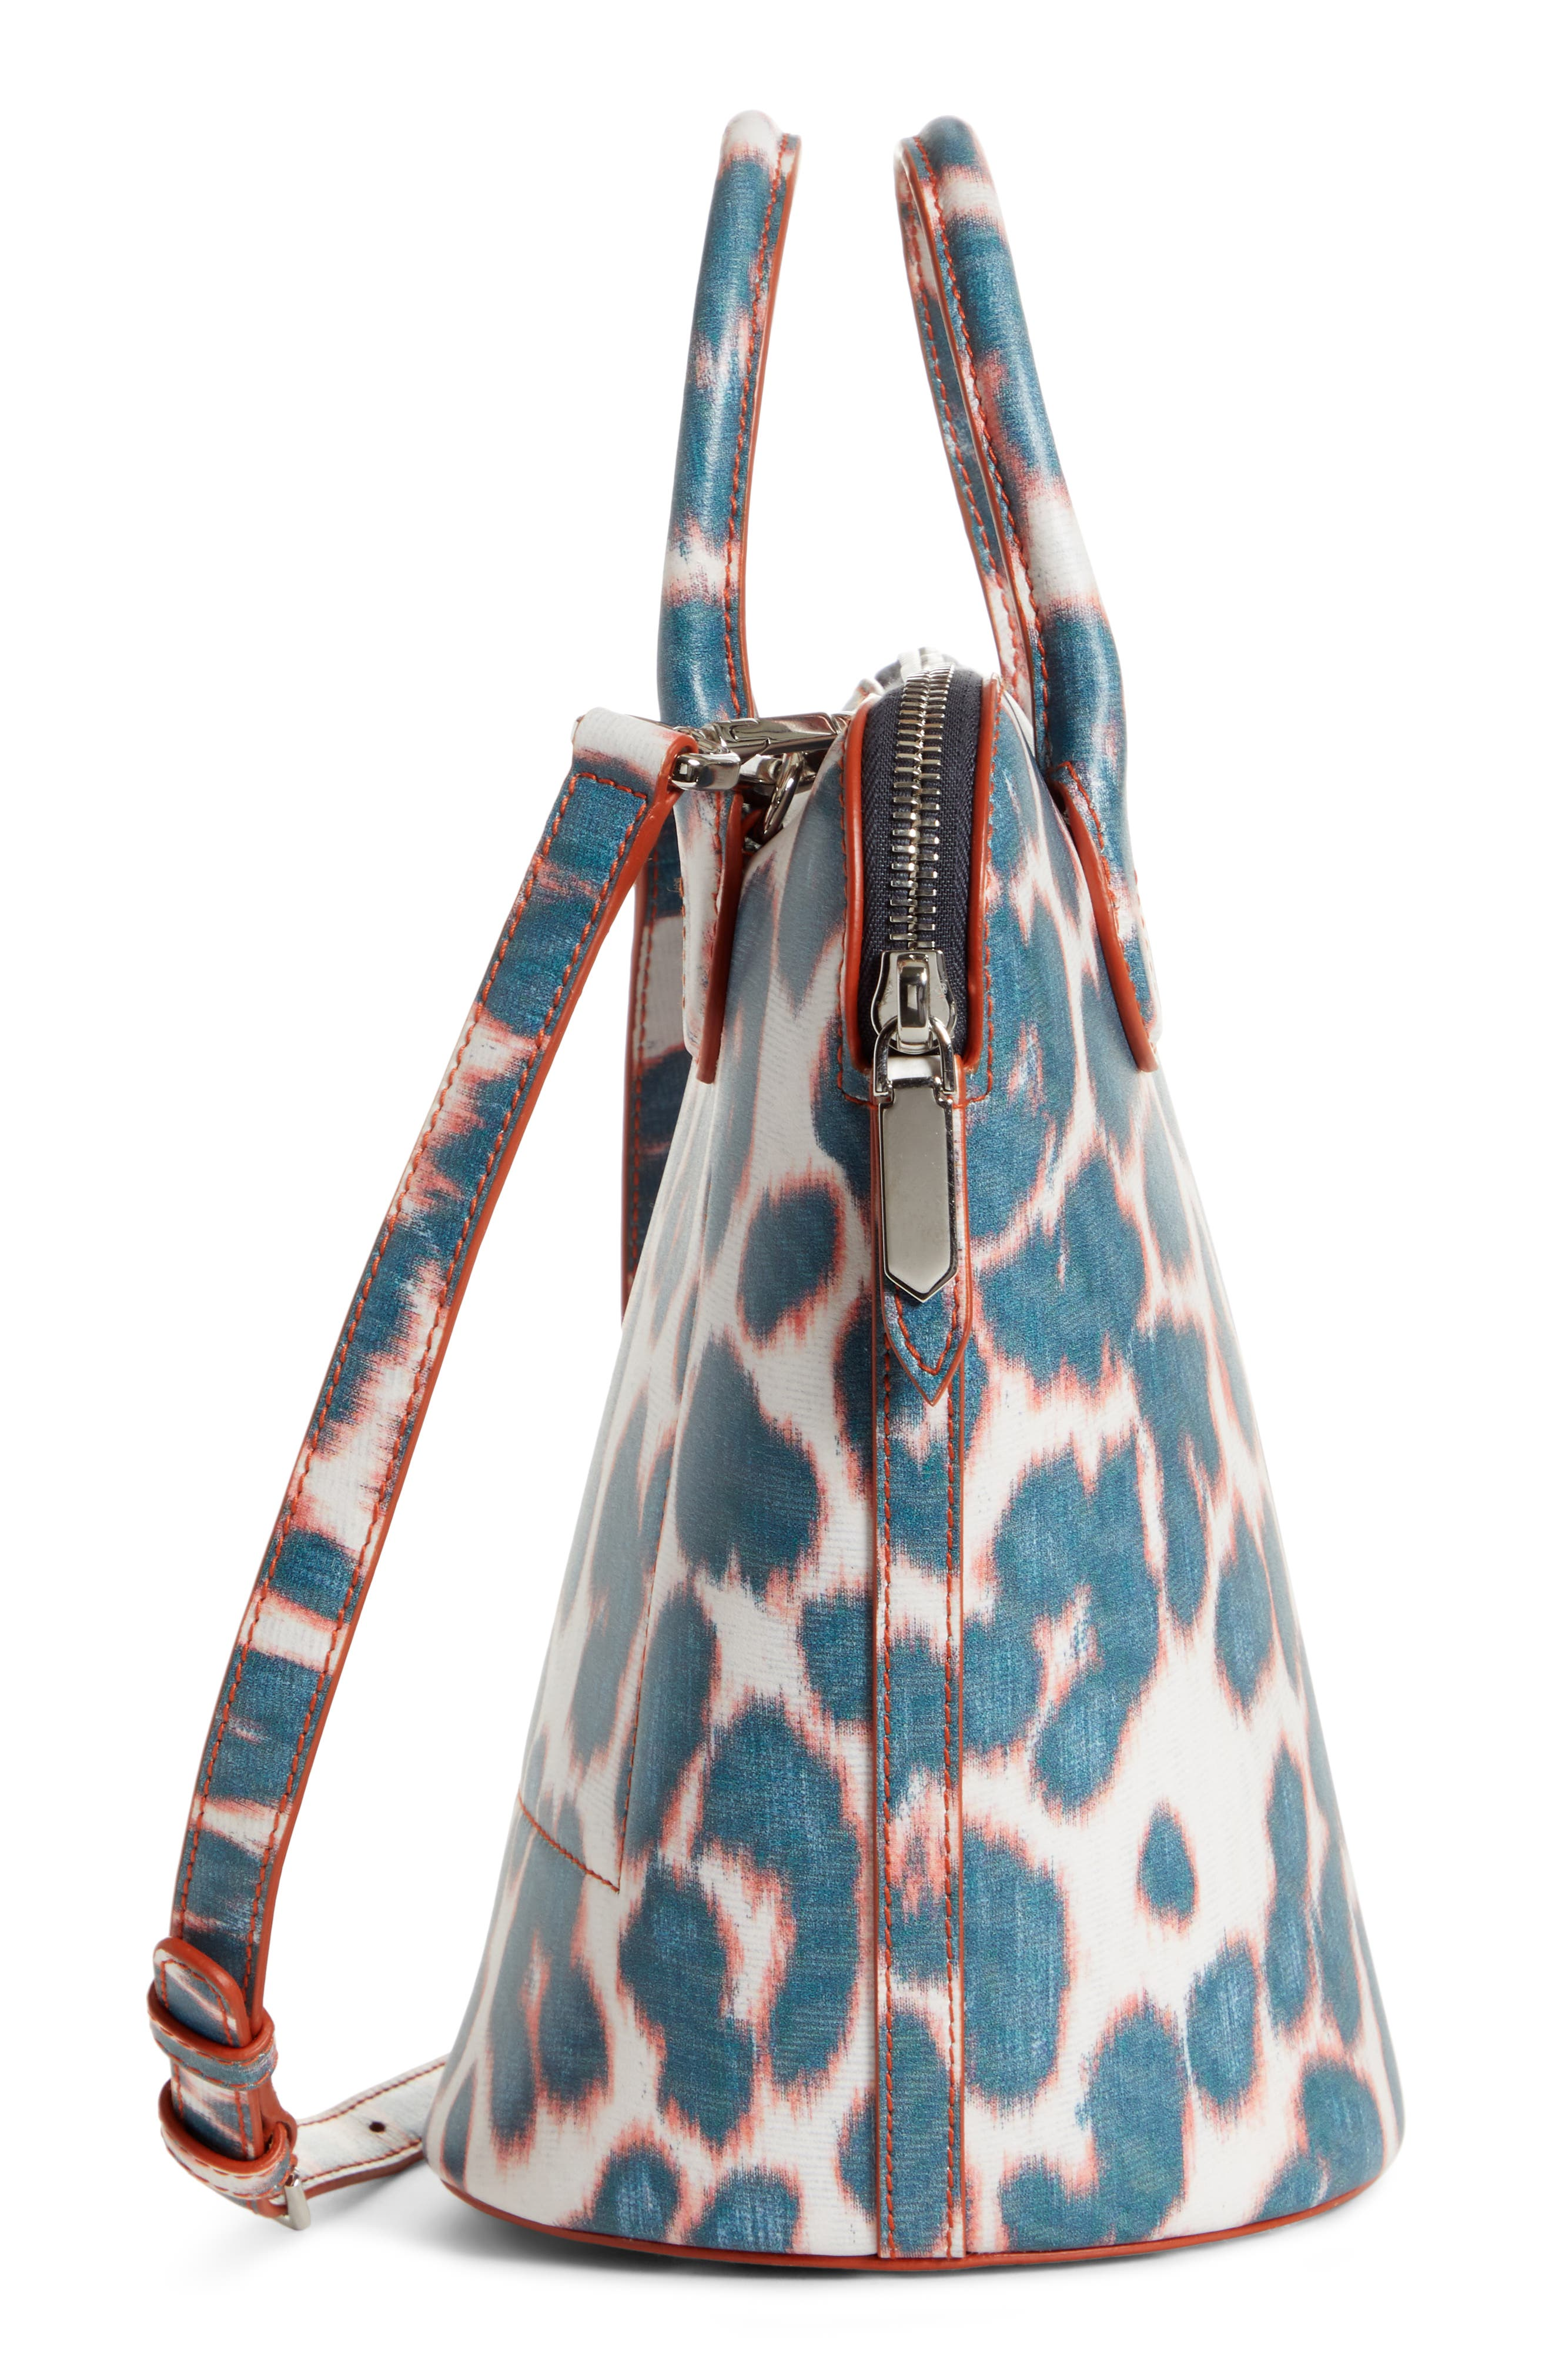 CALVIN KLEIN 205W39NYC, Mini Dalton Calfskin Bucket Bag, Alternate thumbnail 5, color, ELECTRIC PANTHER